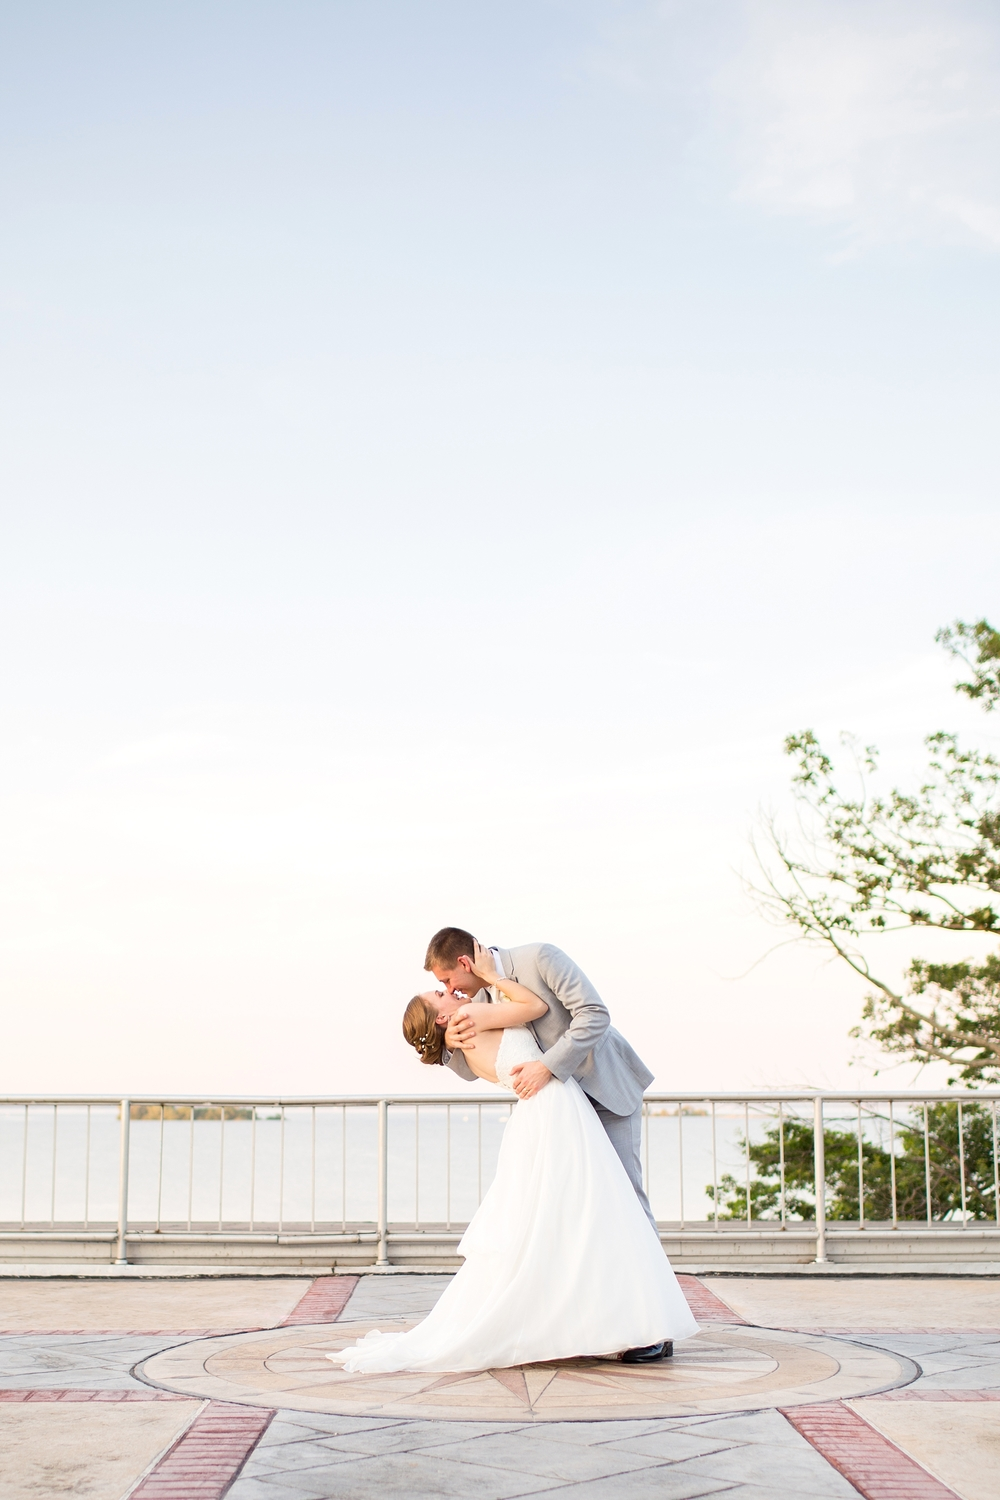 Mroz 5-Bride & Groom Portraits-727_anna grace photography top of the bay maryland wedding photographer photo.jpg